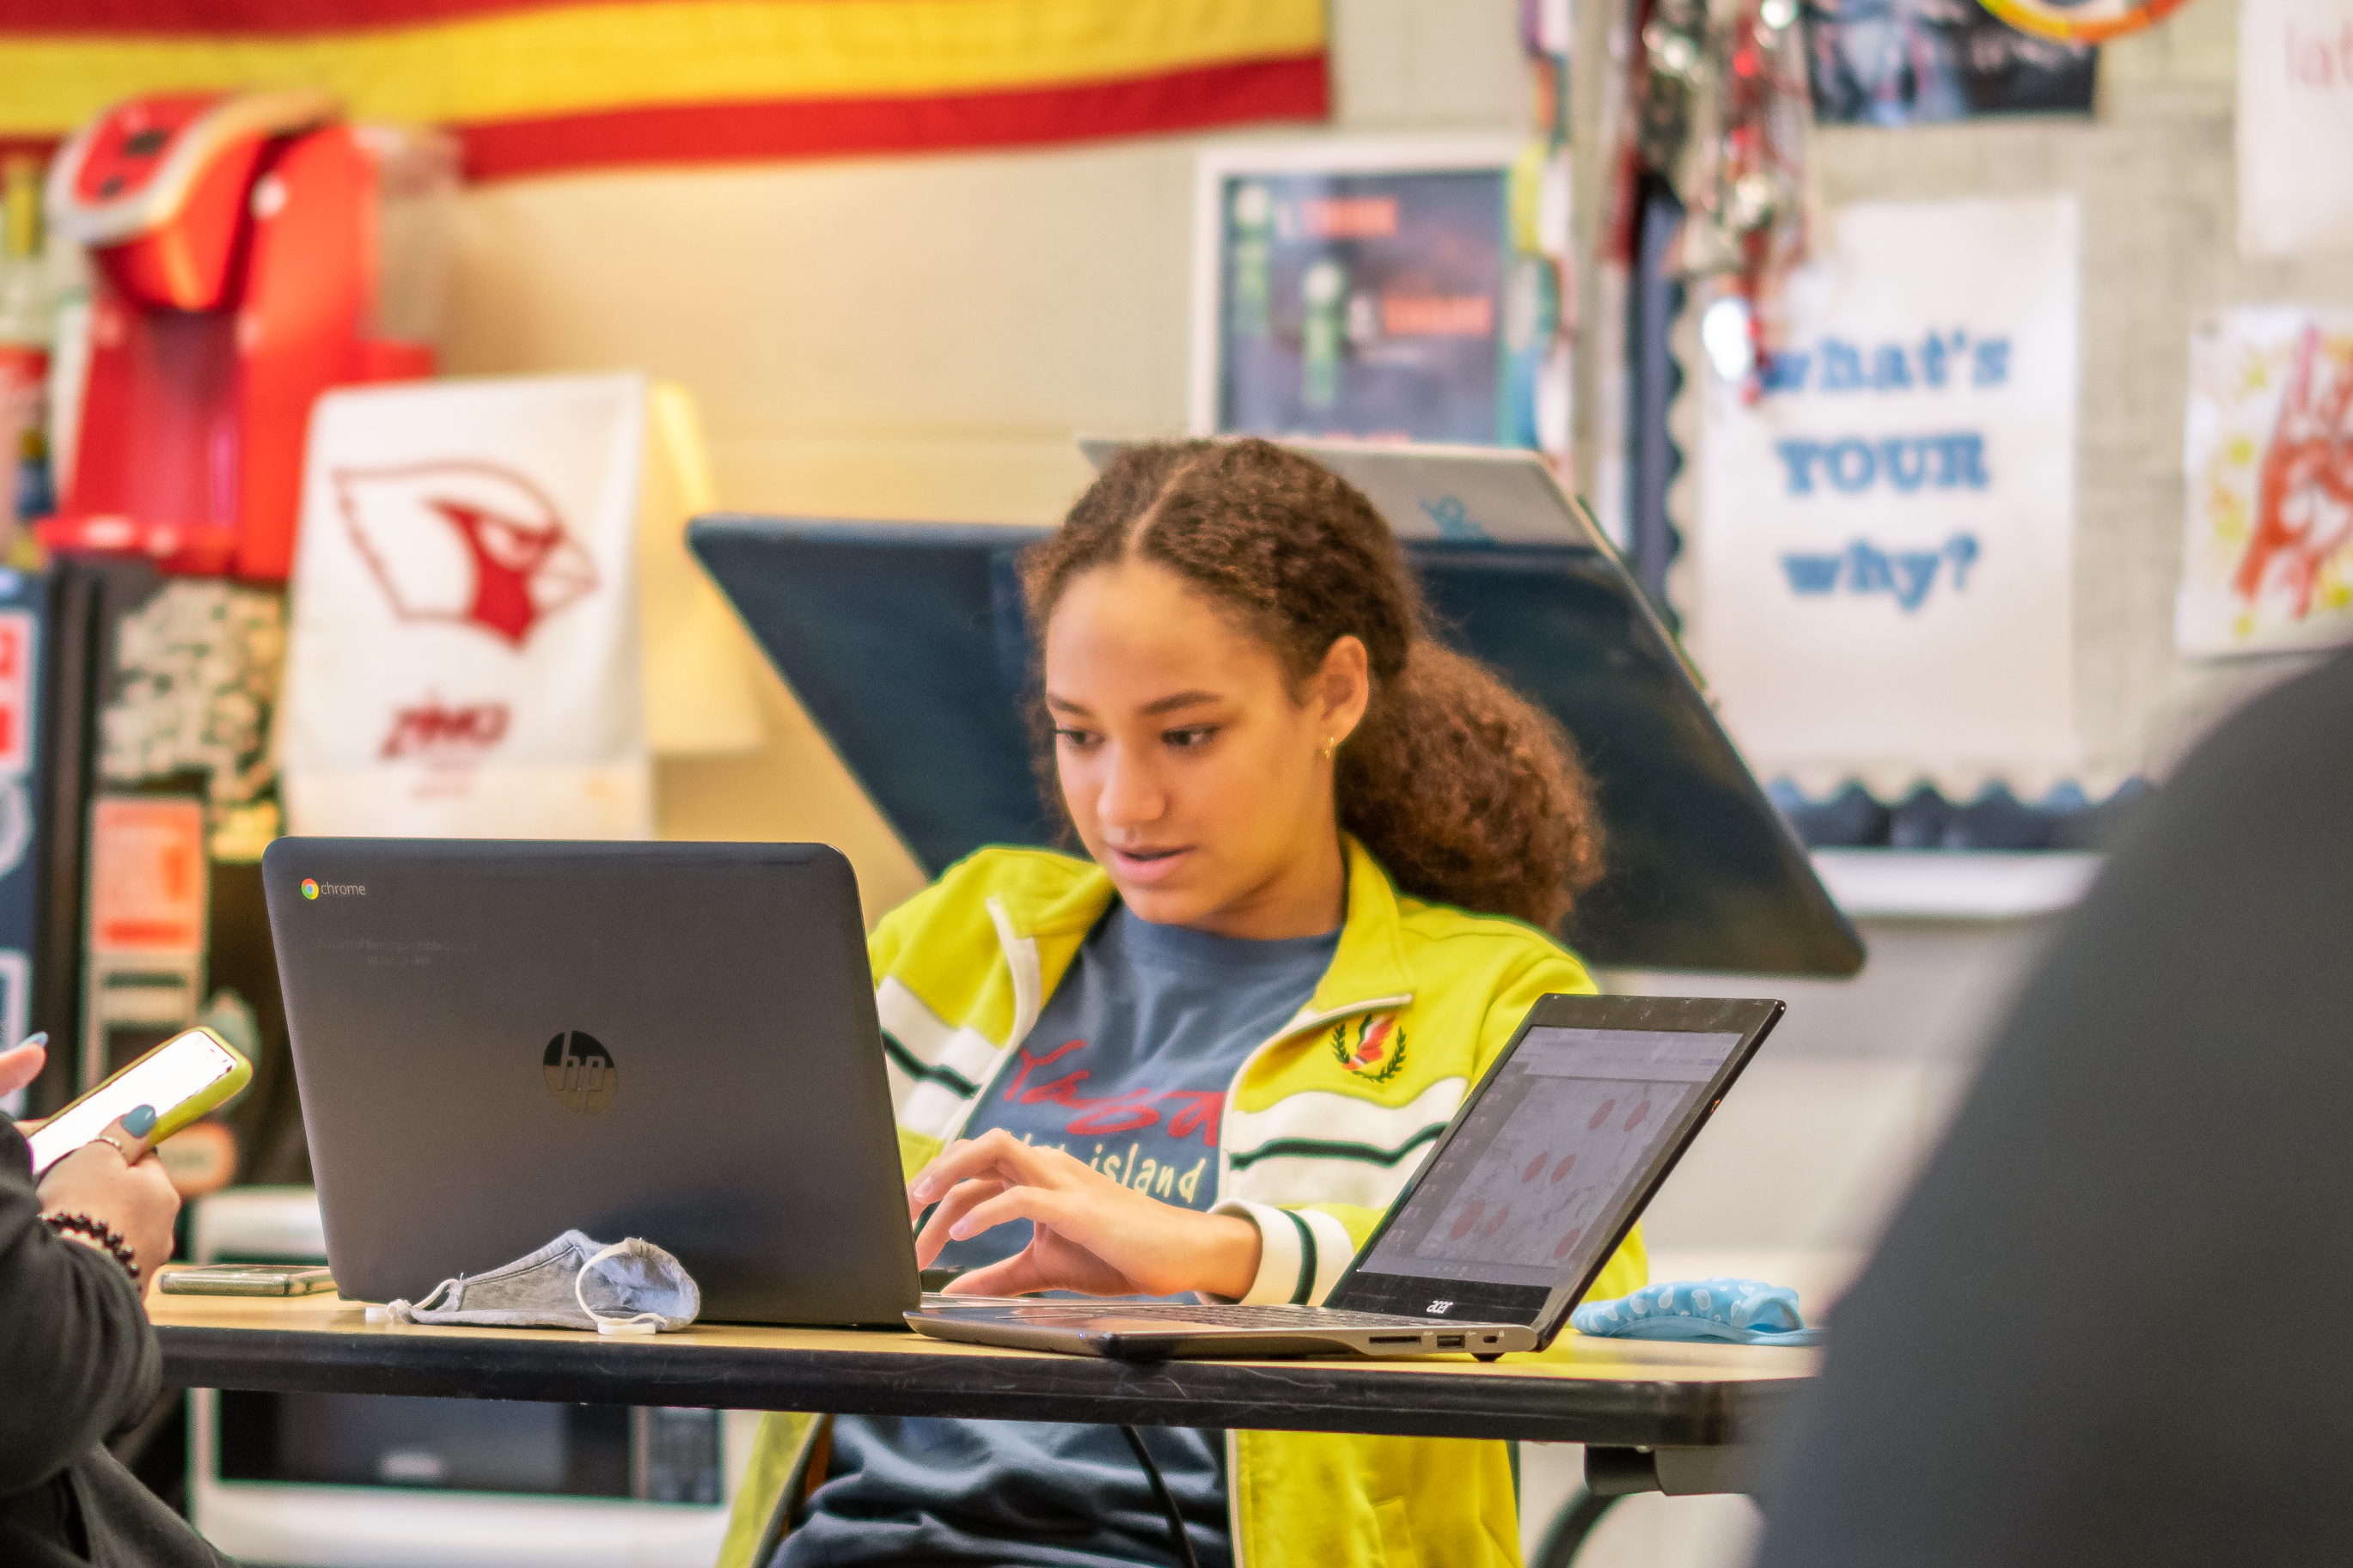 Student sitting at a classroom desk, working on her Chromebook.